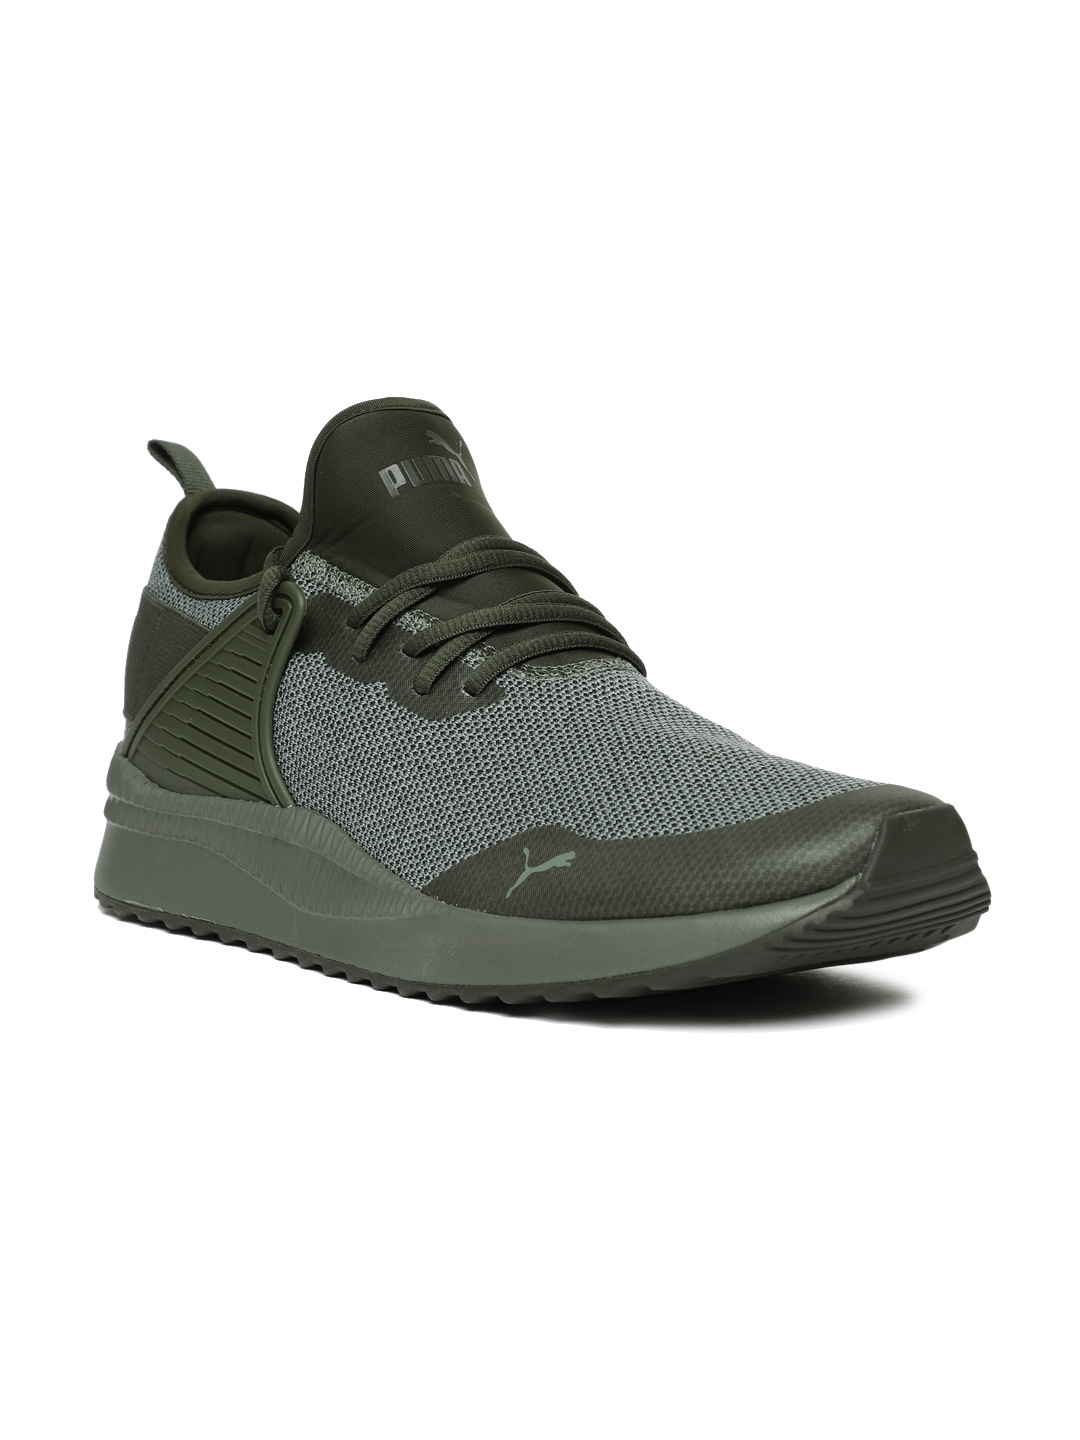 537a3aef4c28 Puma Footwear - Buy Puma Footwear Online in India